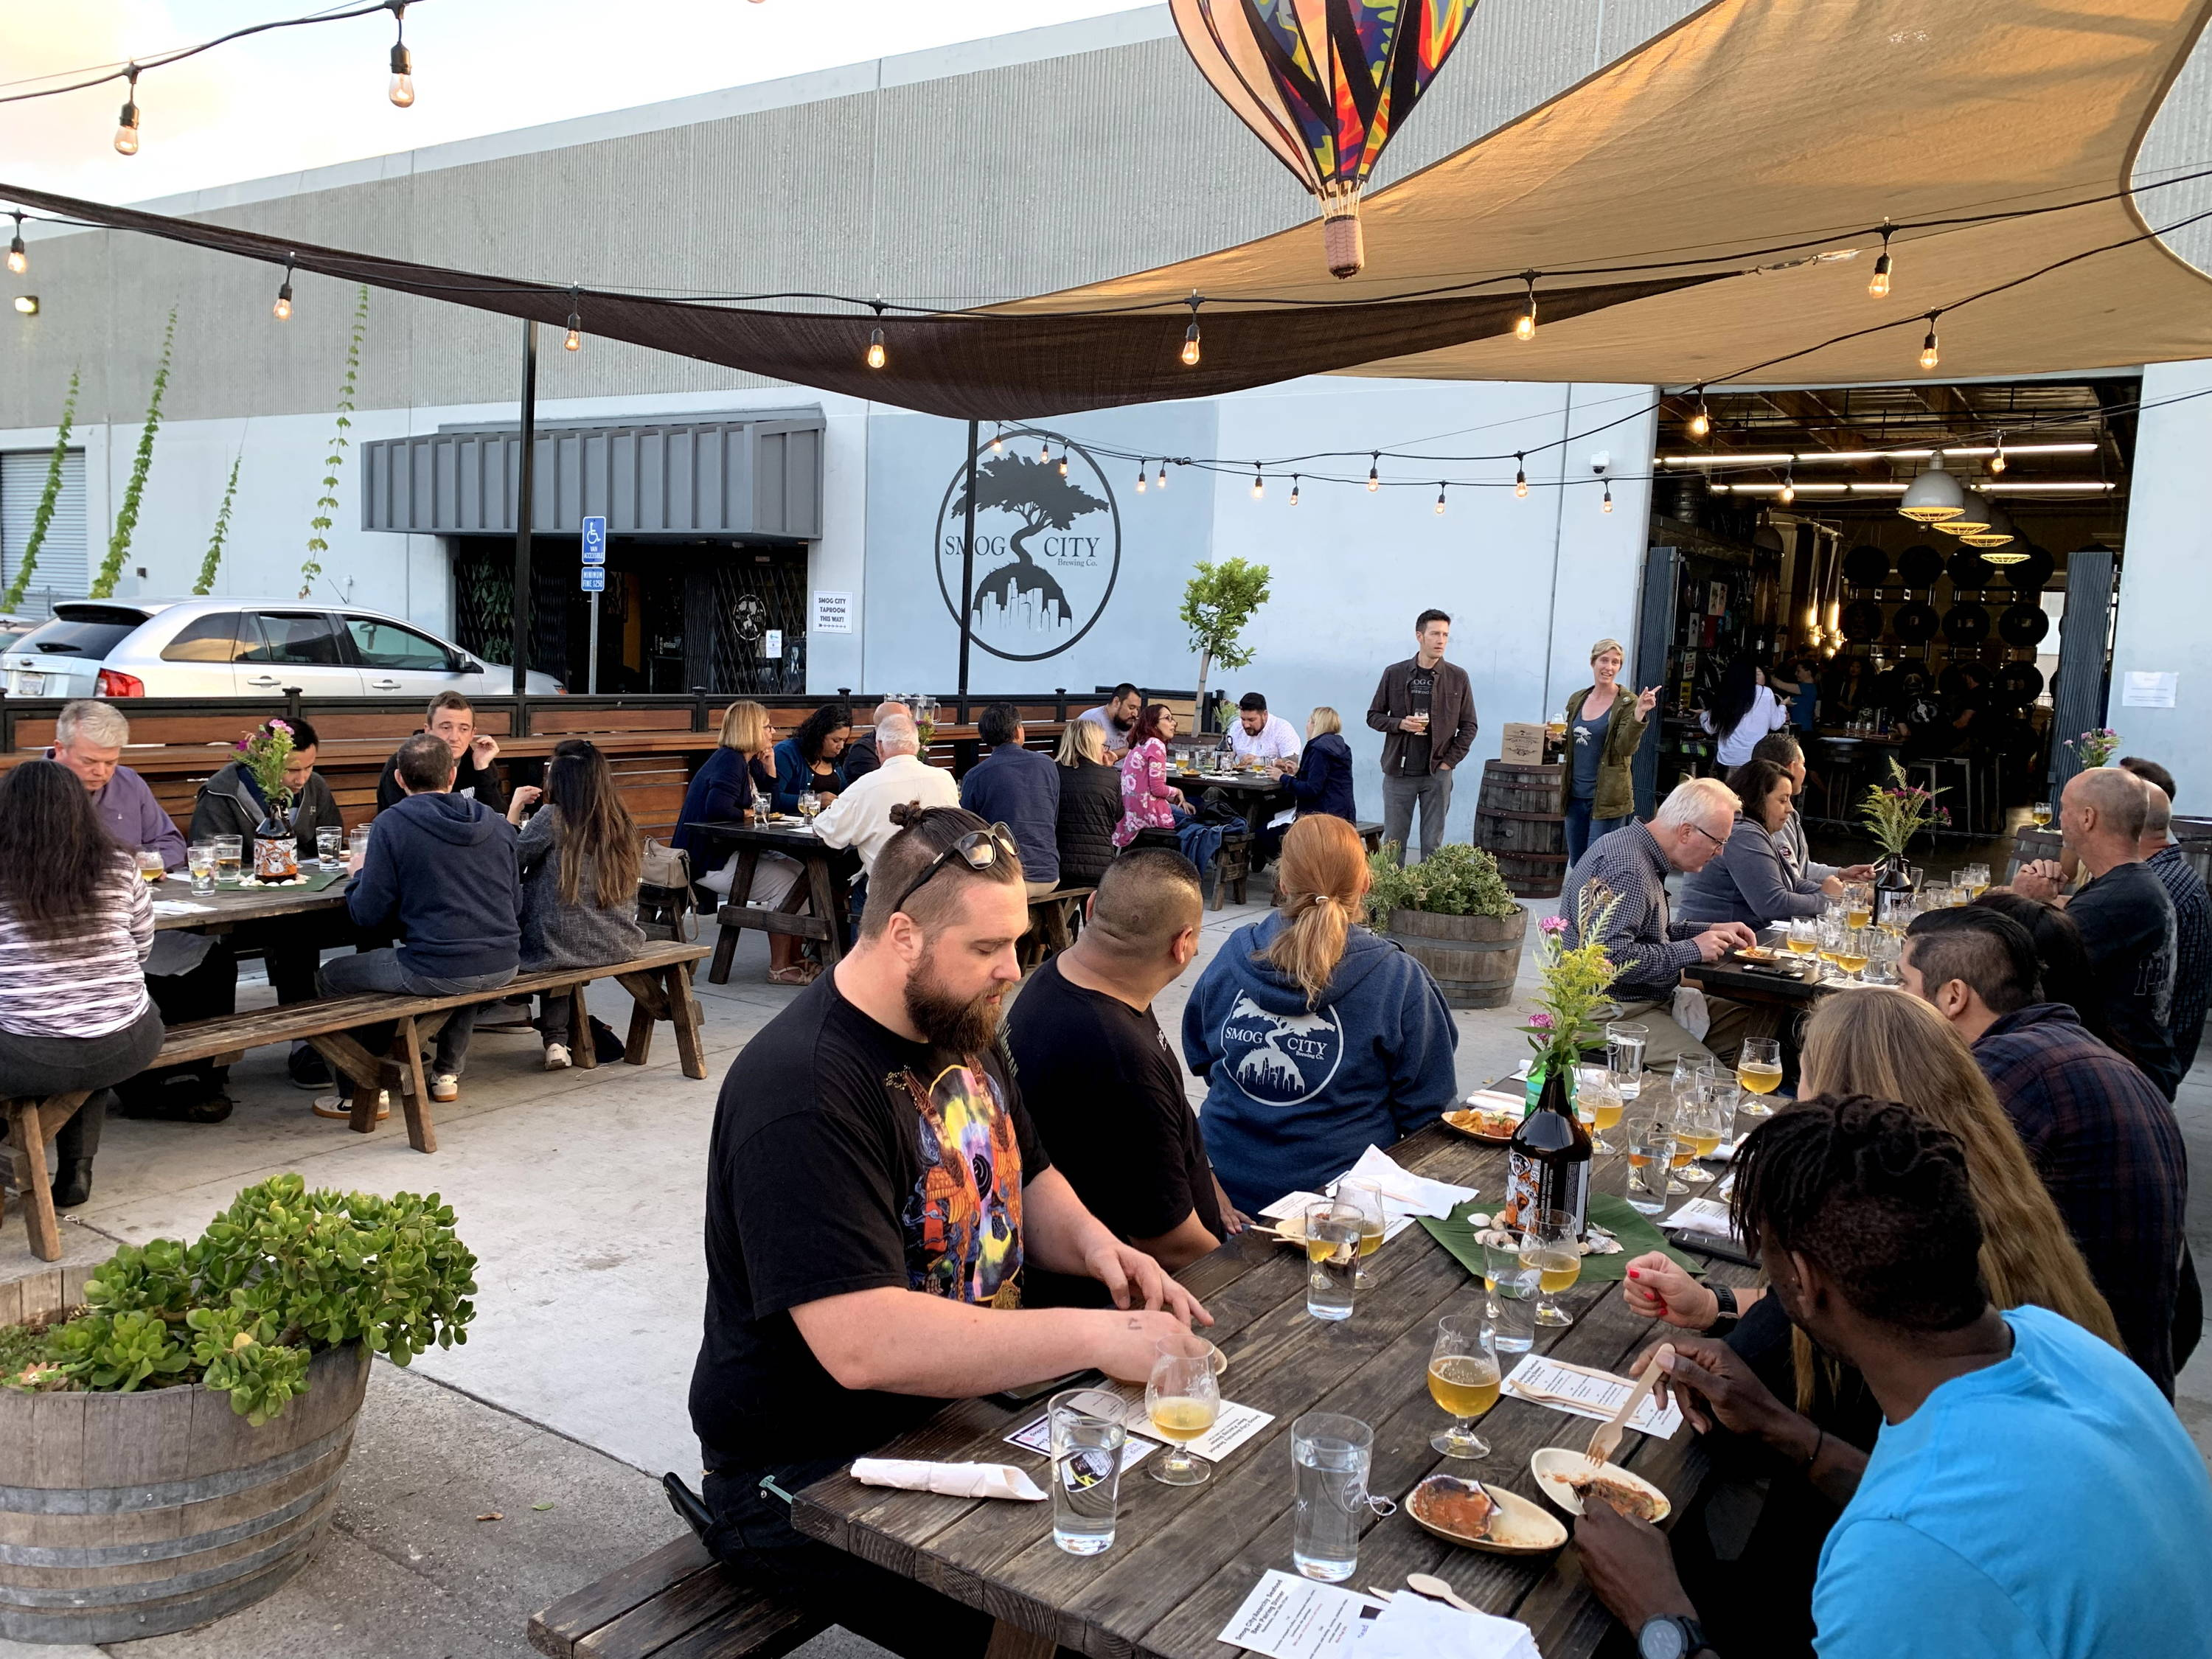 a view of the patio at the Brewery and Taproom. Guests are enjoying an informative beer dinner.